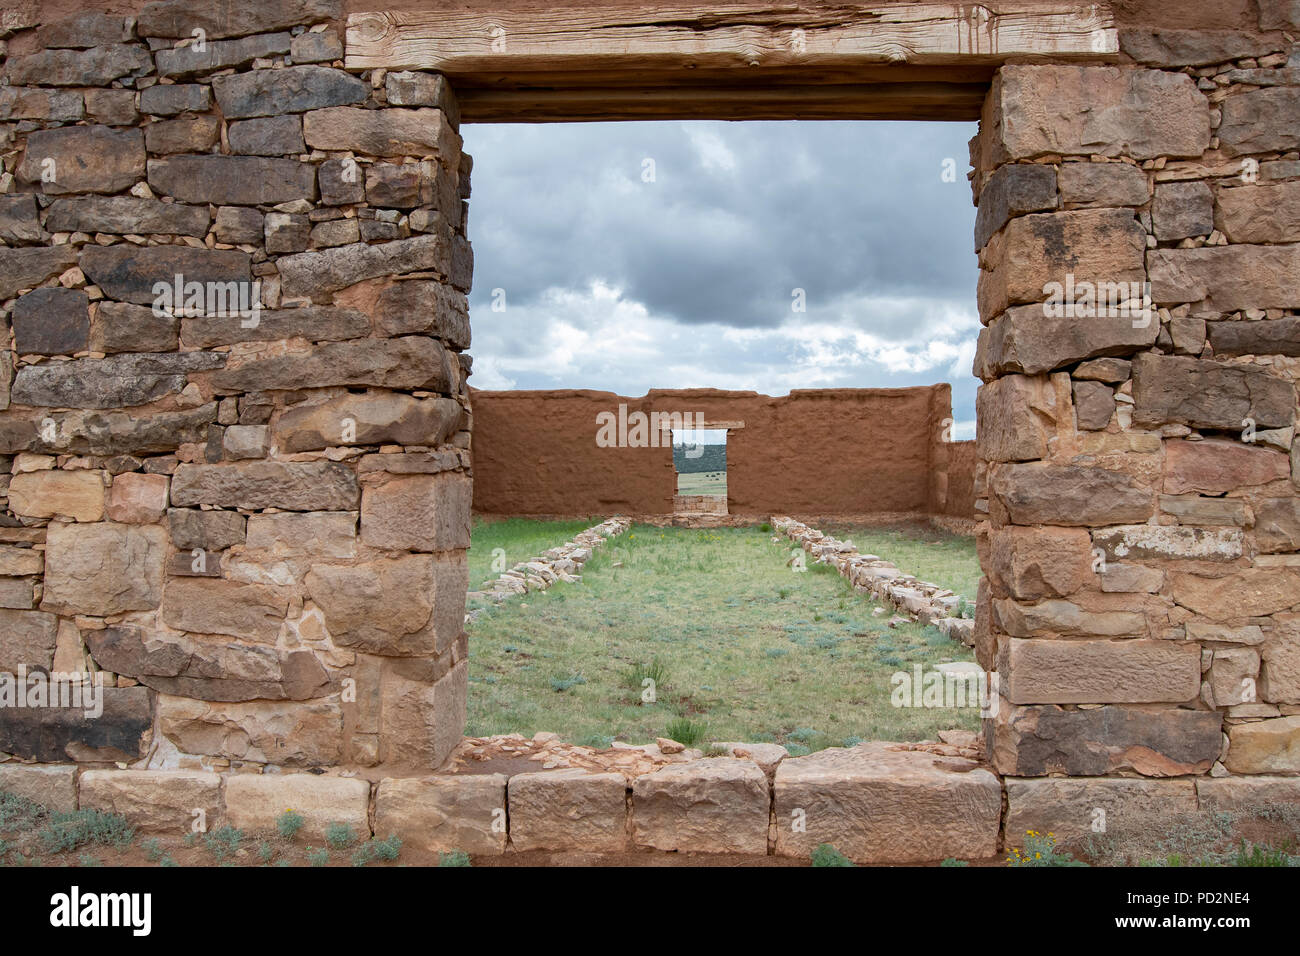 Fort Union NM, Mora County, NM, USA, by Dominique Braud/Dembinsky Photo Assoc - Stock Image